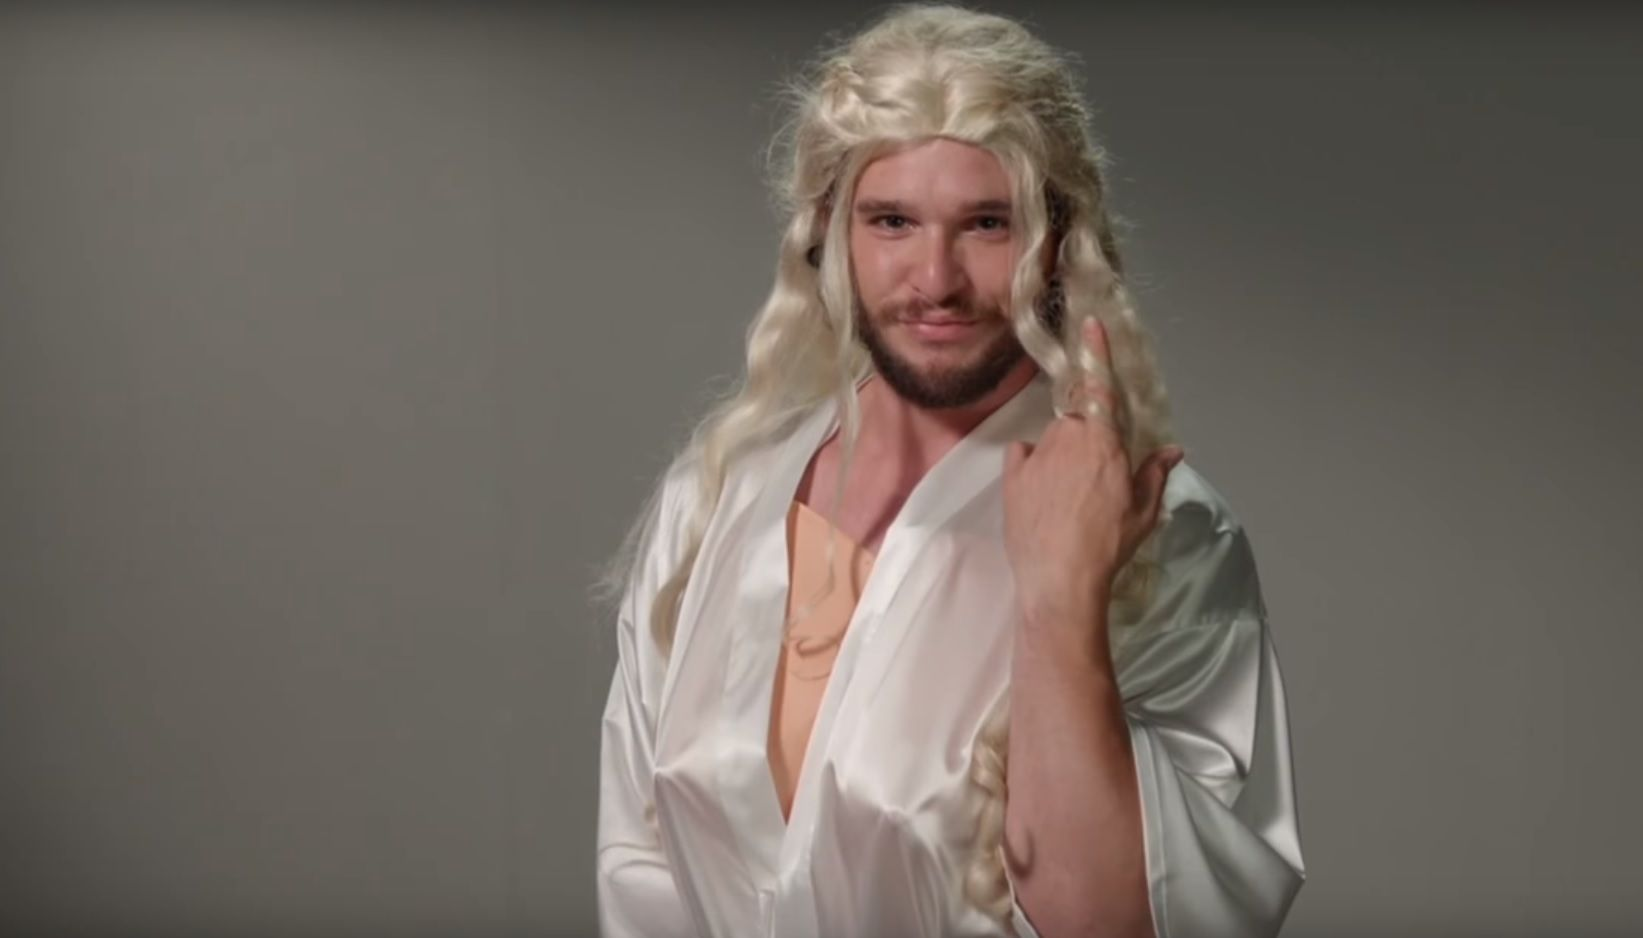 Gwendoline Christie Nude Pictures for game of thrones:' jon snow actor kit harington's hilarious